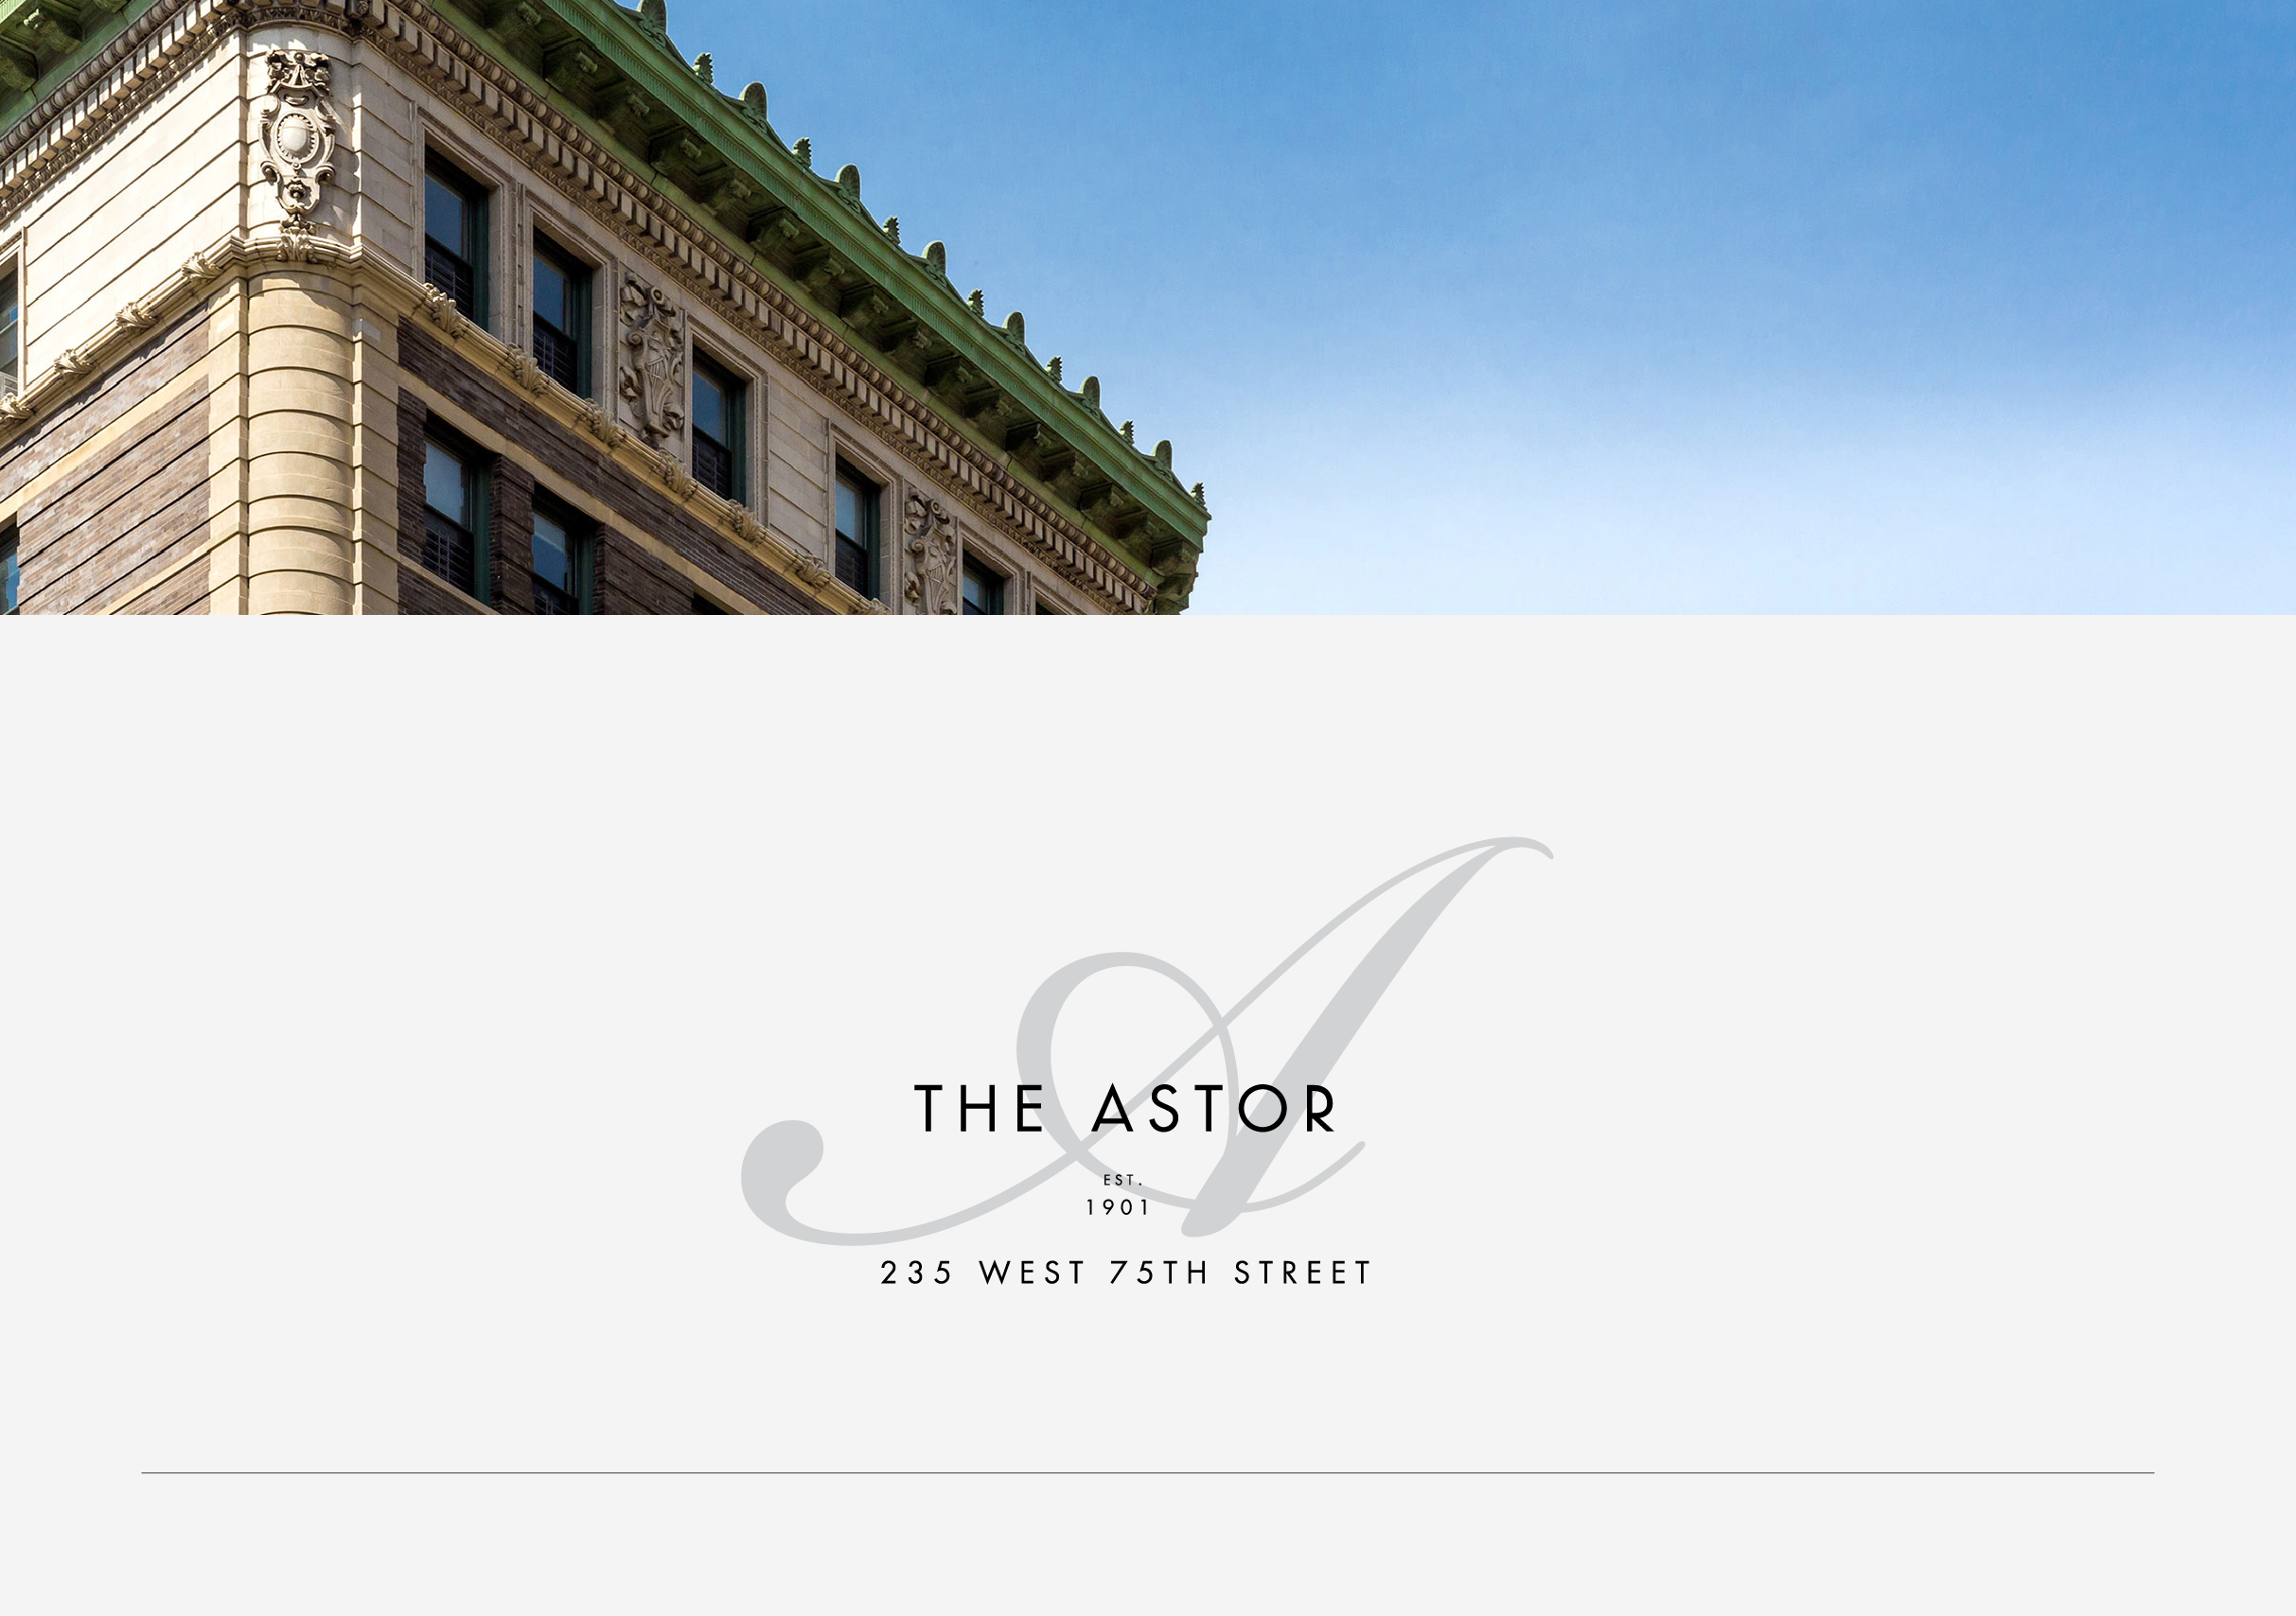 THE ASTOR-01